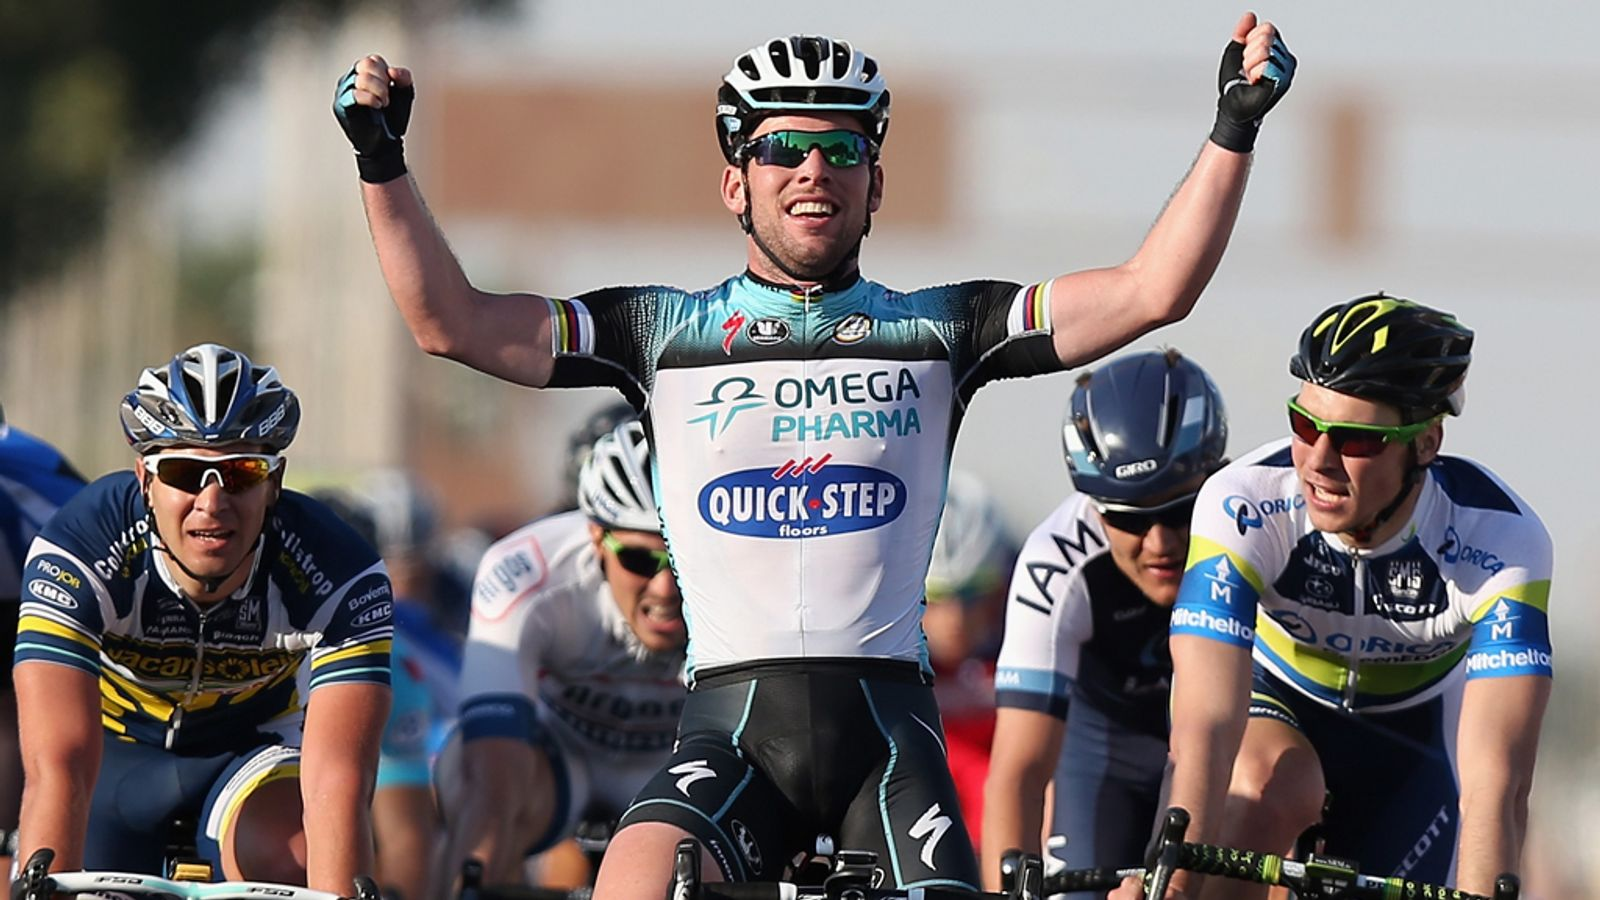 Mark Cavendish sprints to victory on stage three of the Tour of Qatar